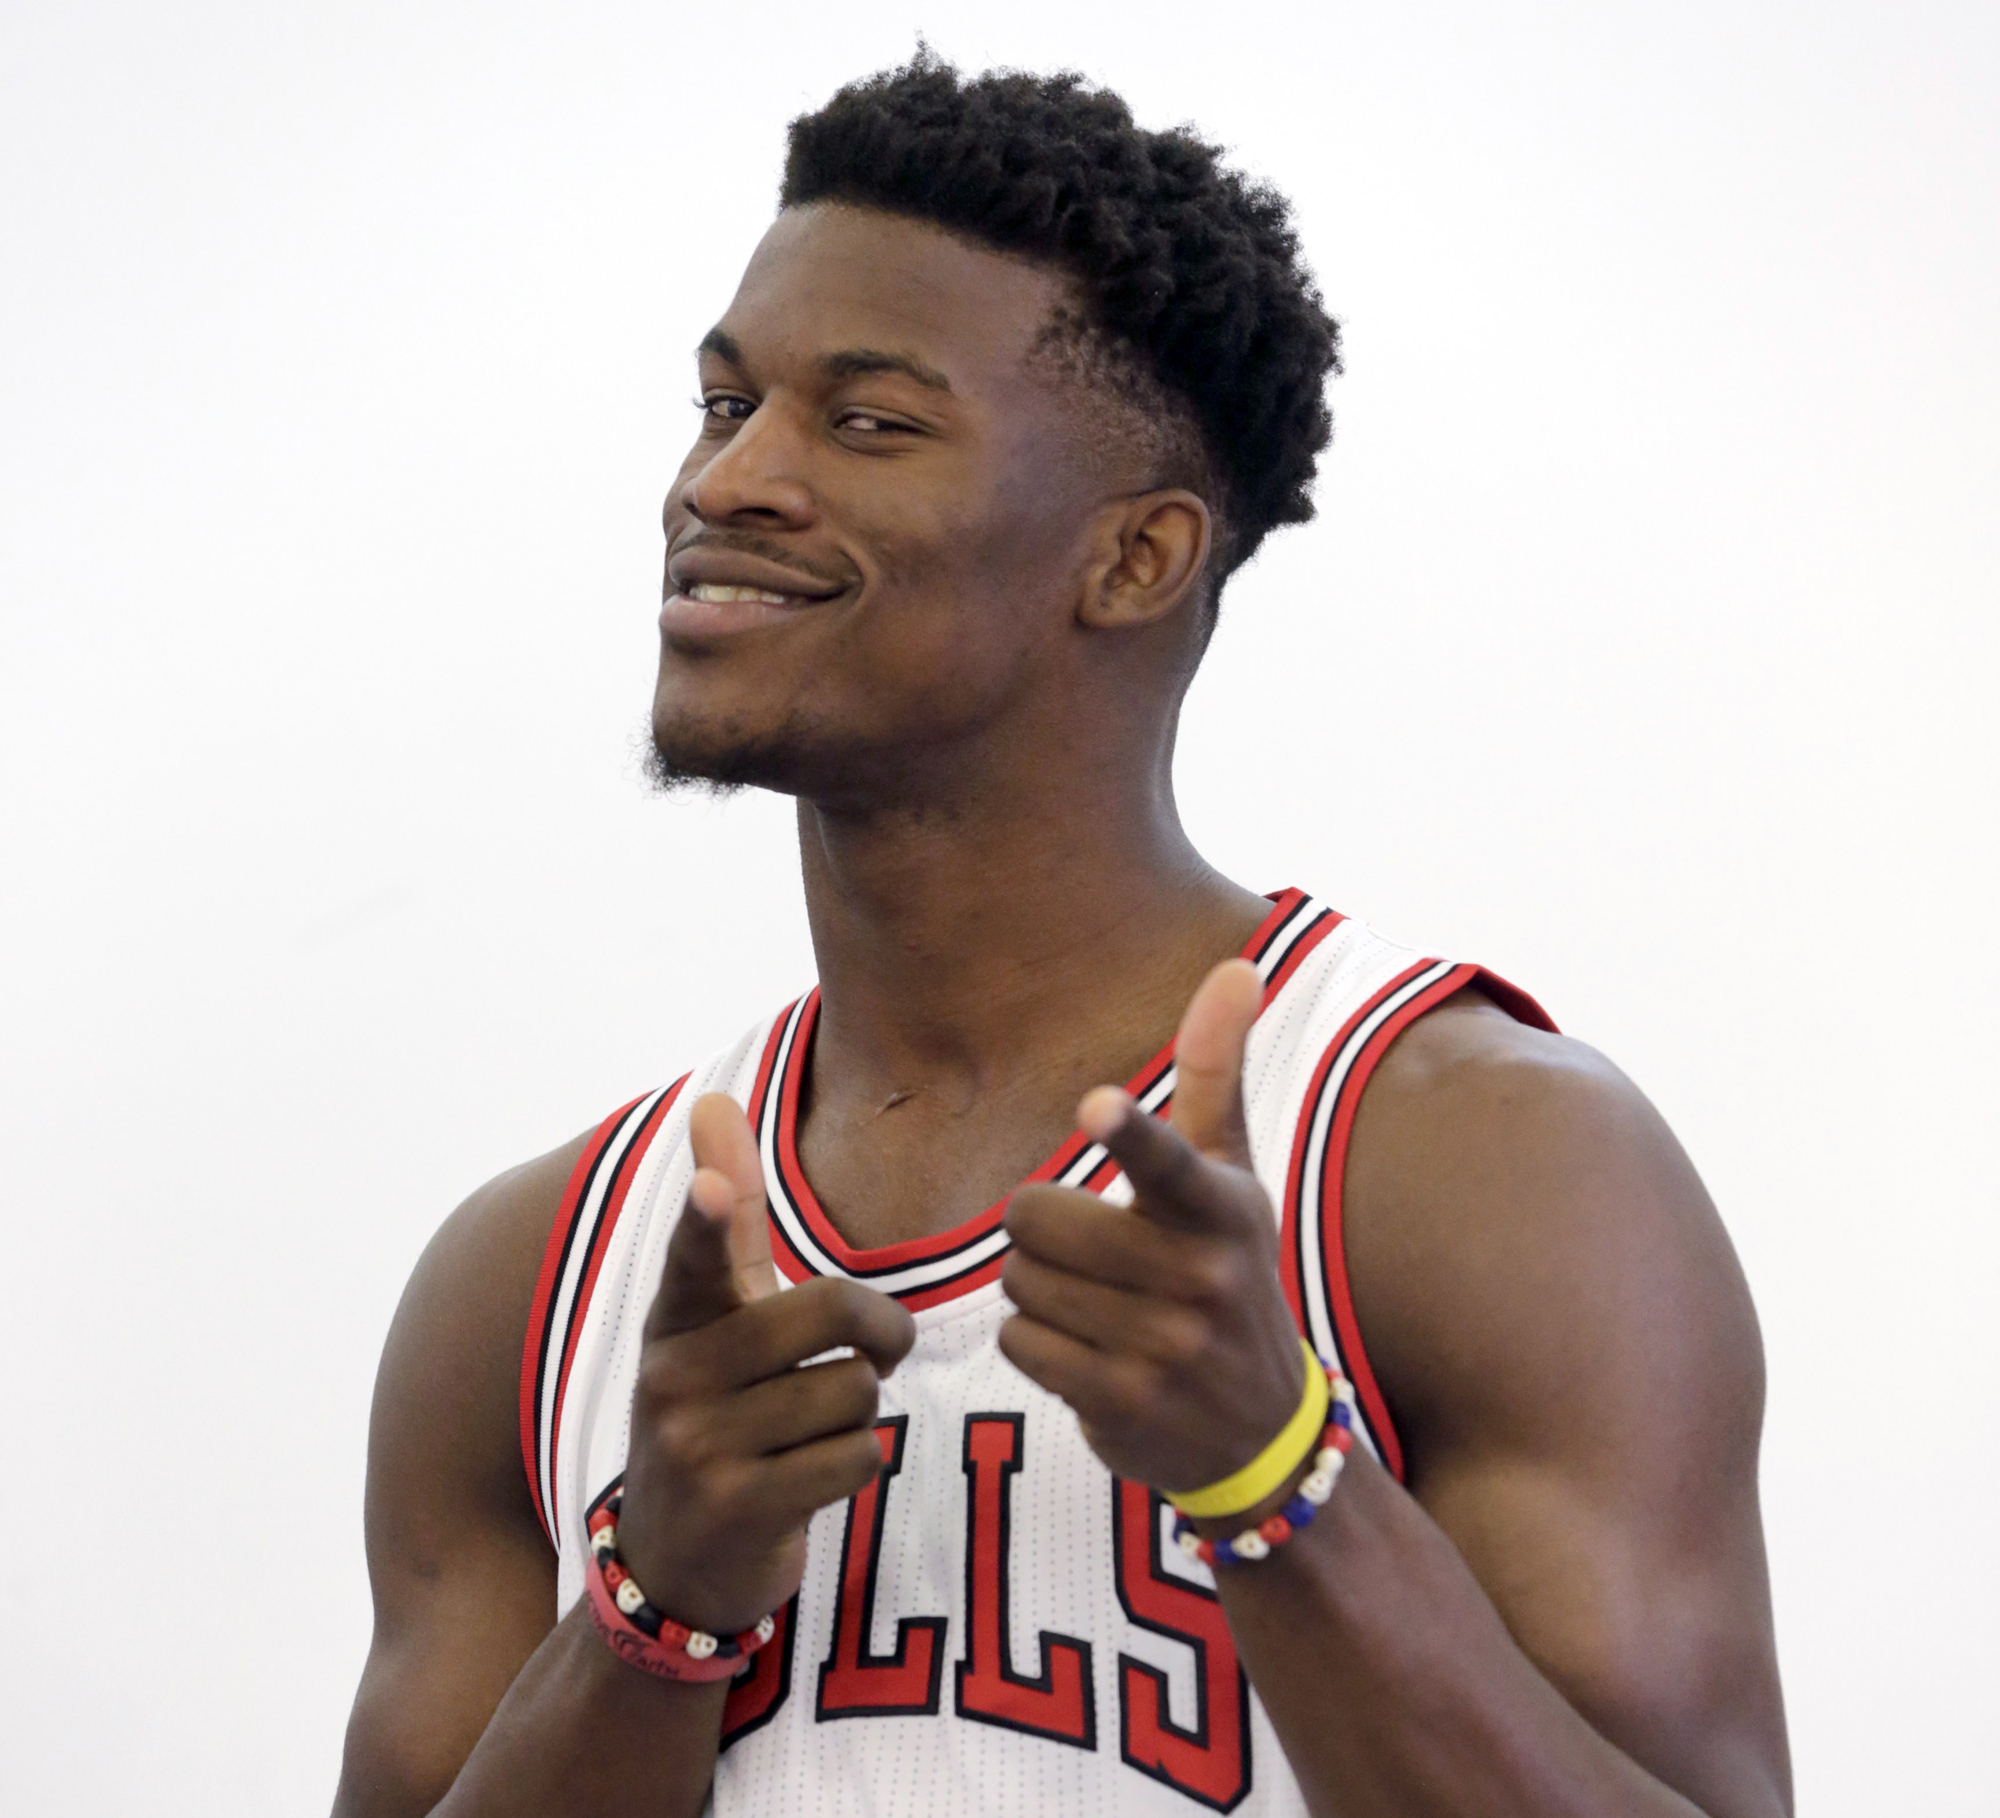 Jimmy Butler on Singing for Taylor Swift and Winning in Chicago